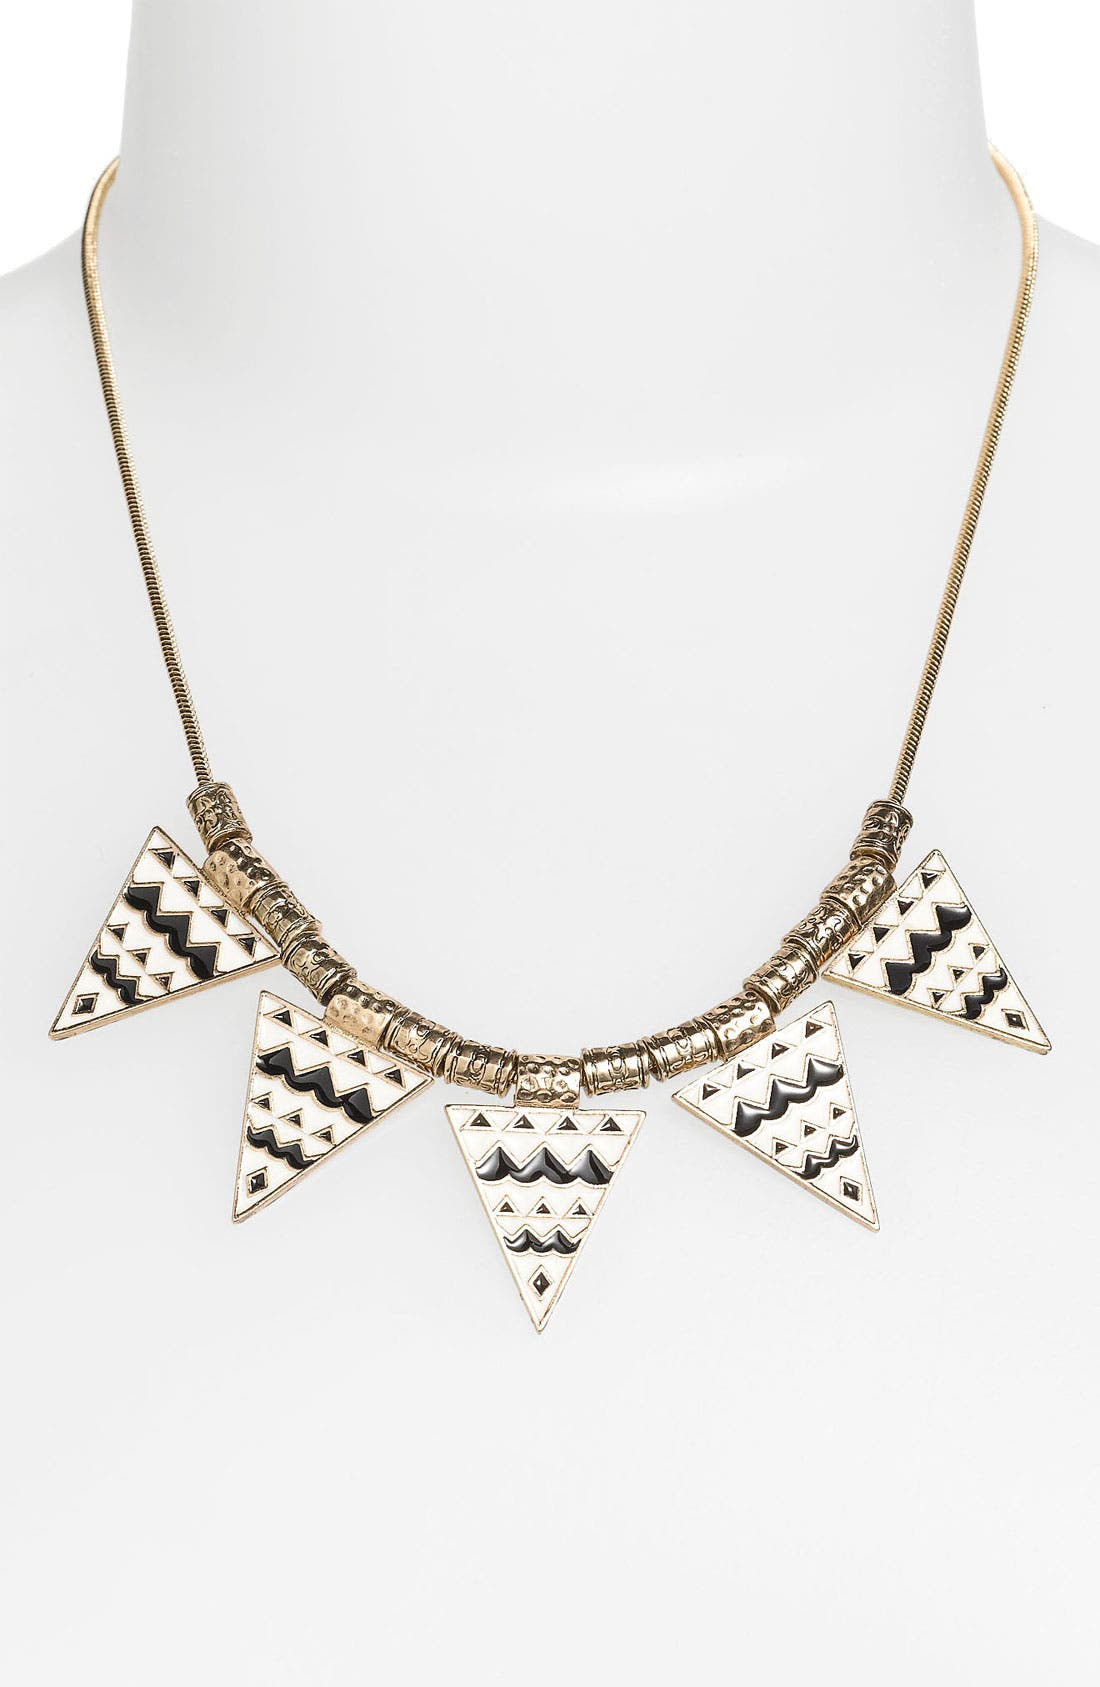 Alternate Image 1 Selected - Stephan & Co. 'Aztec Triangle' Statement Necklace